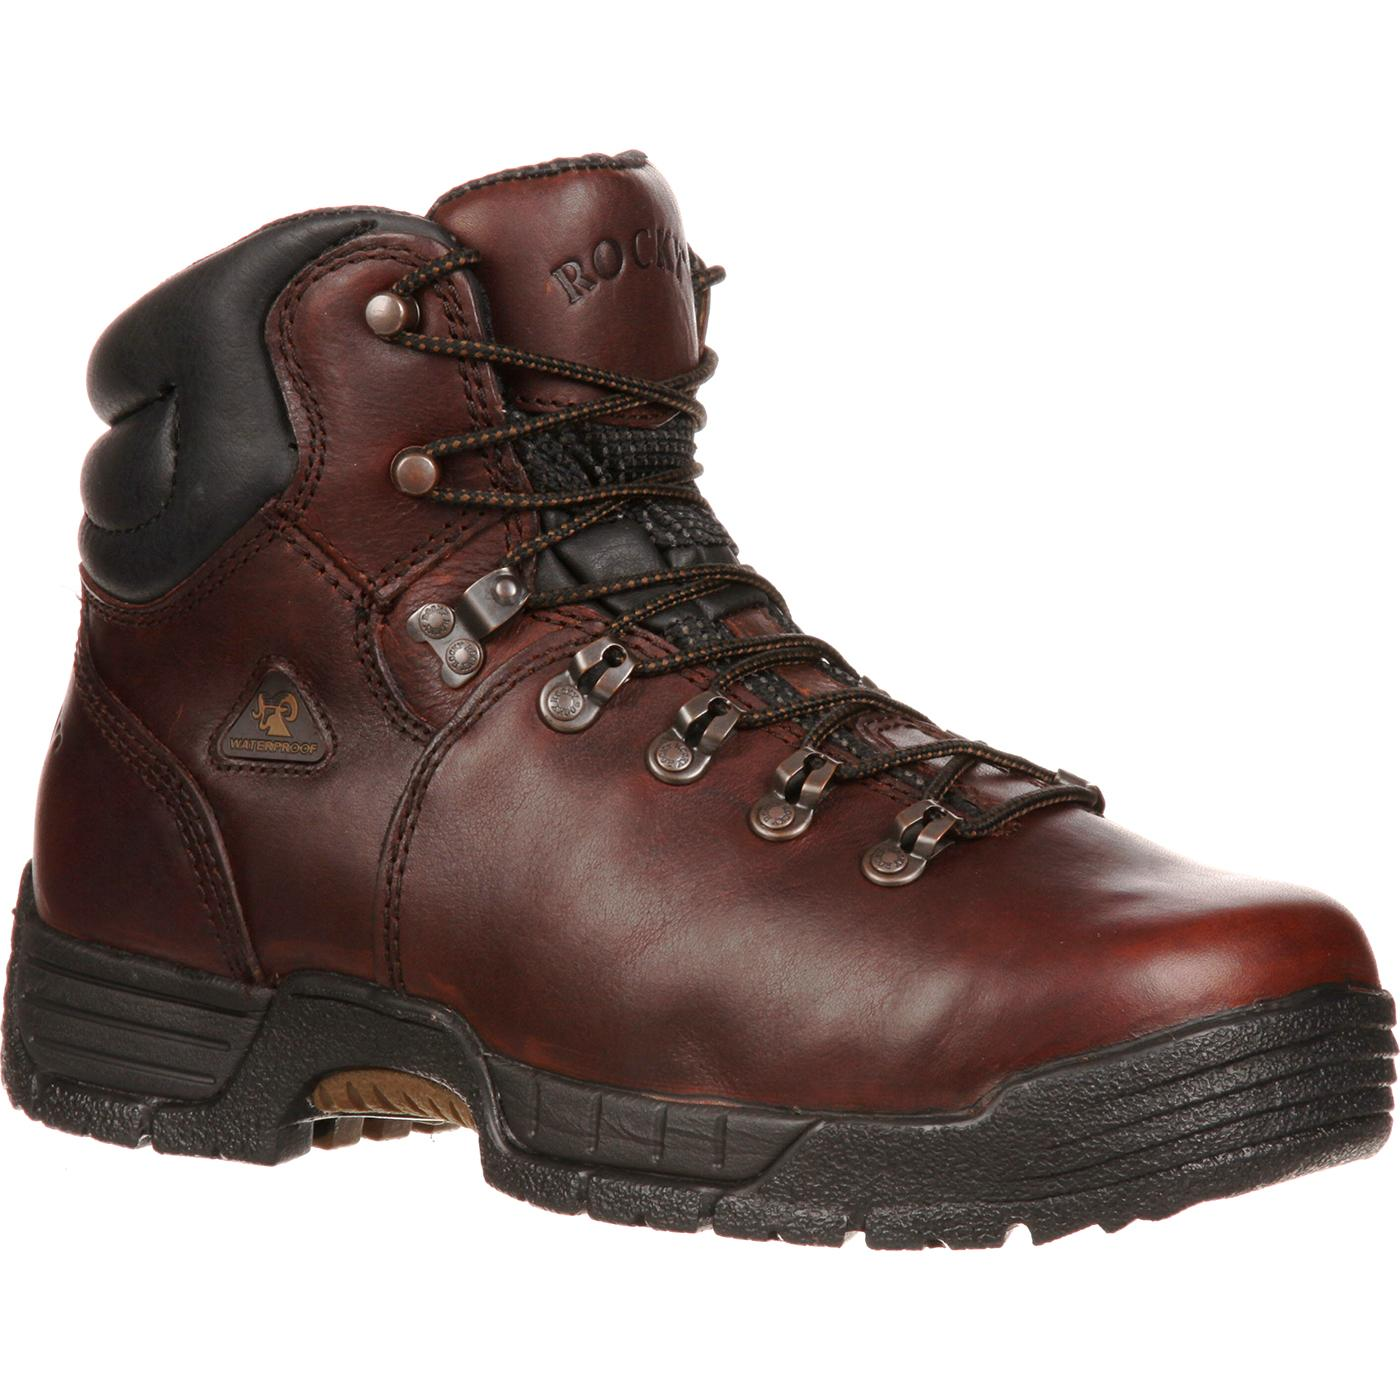 Rocky MobiLite Men's Waterproof Work Boots, Style #7114